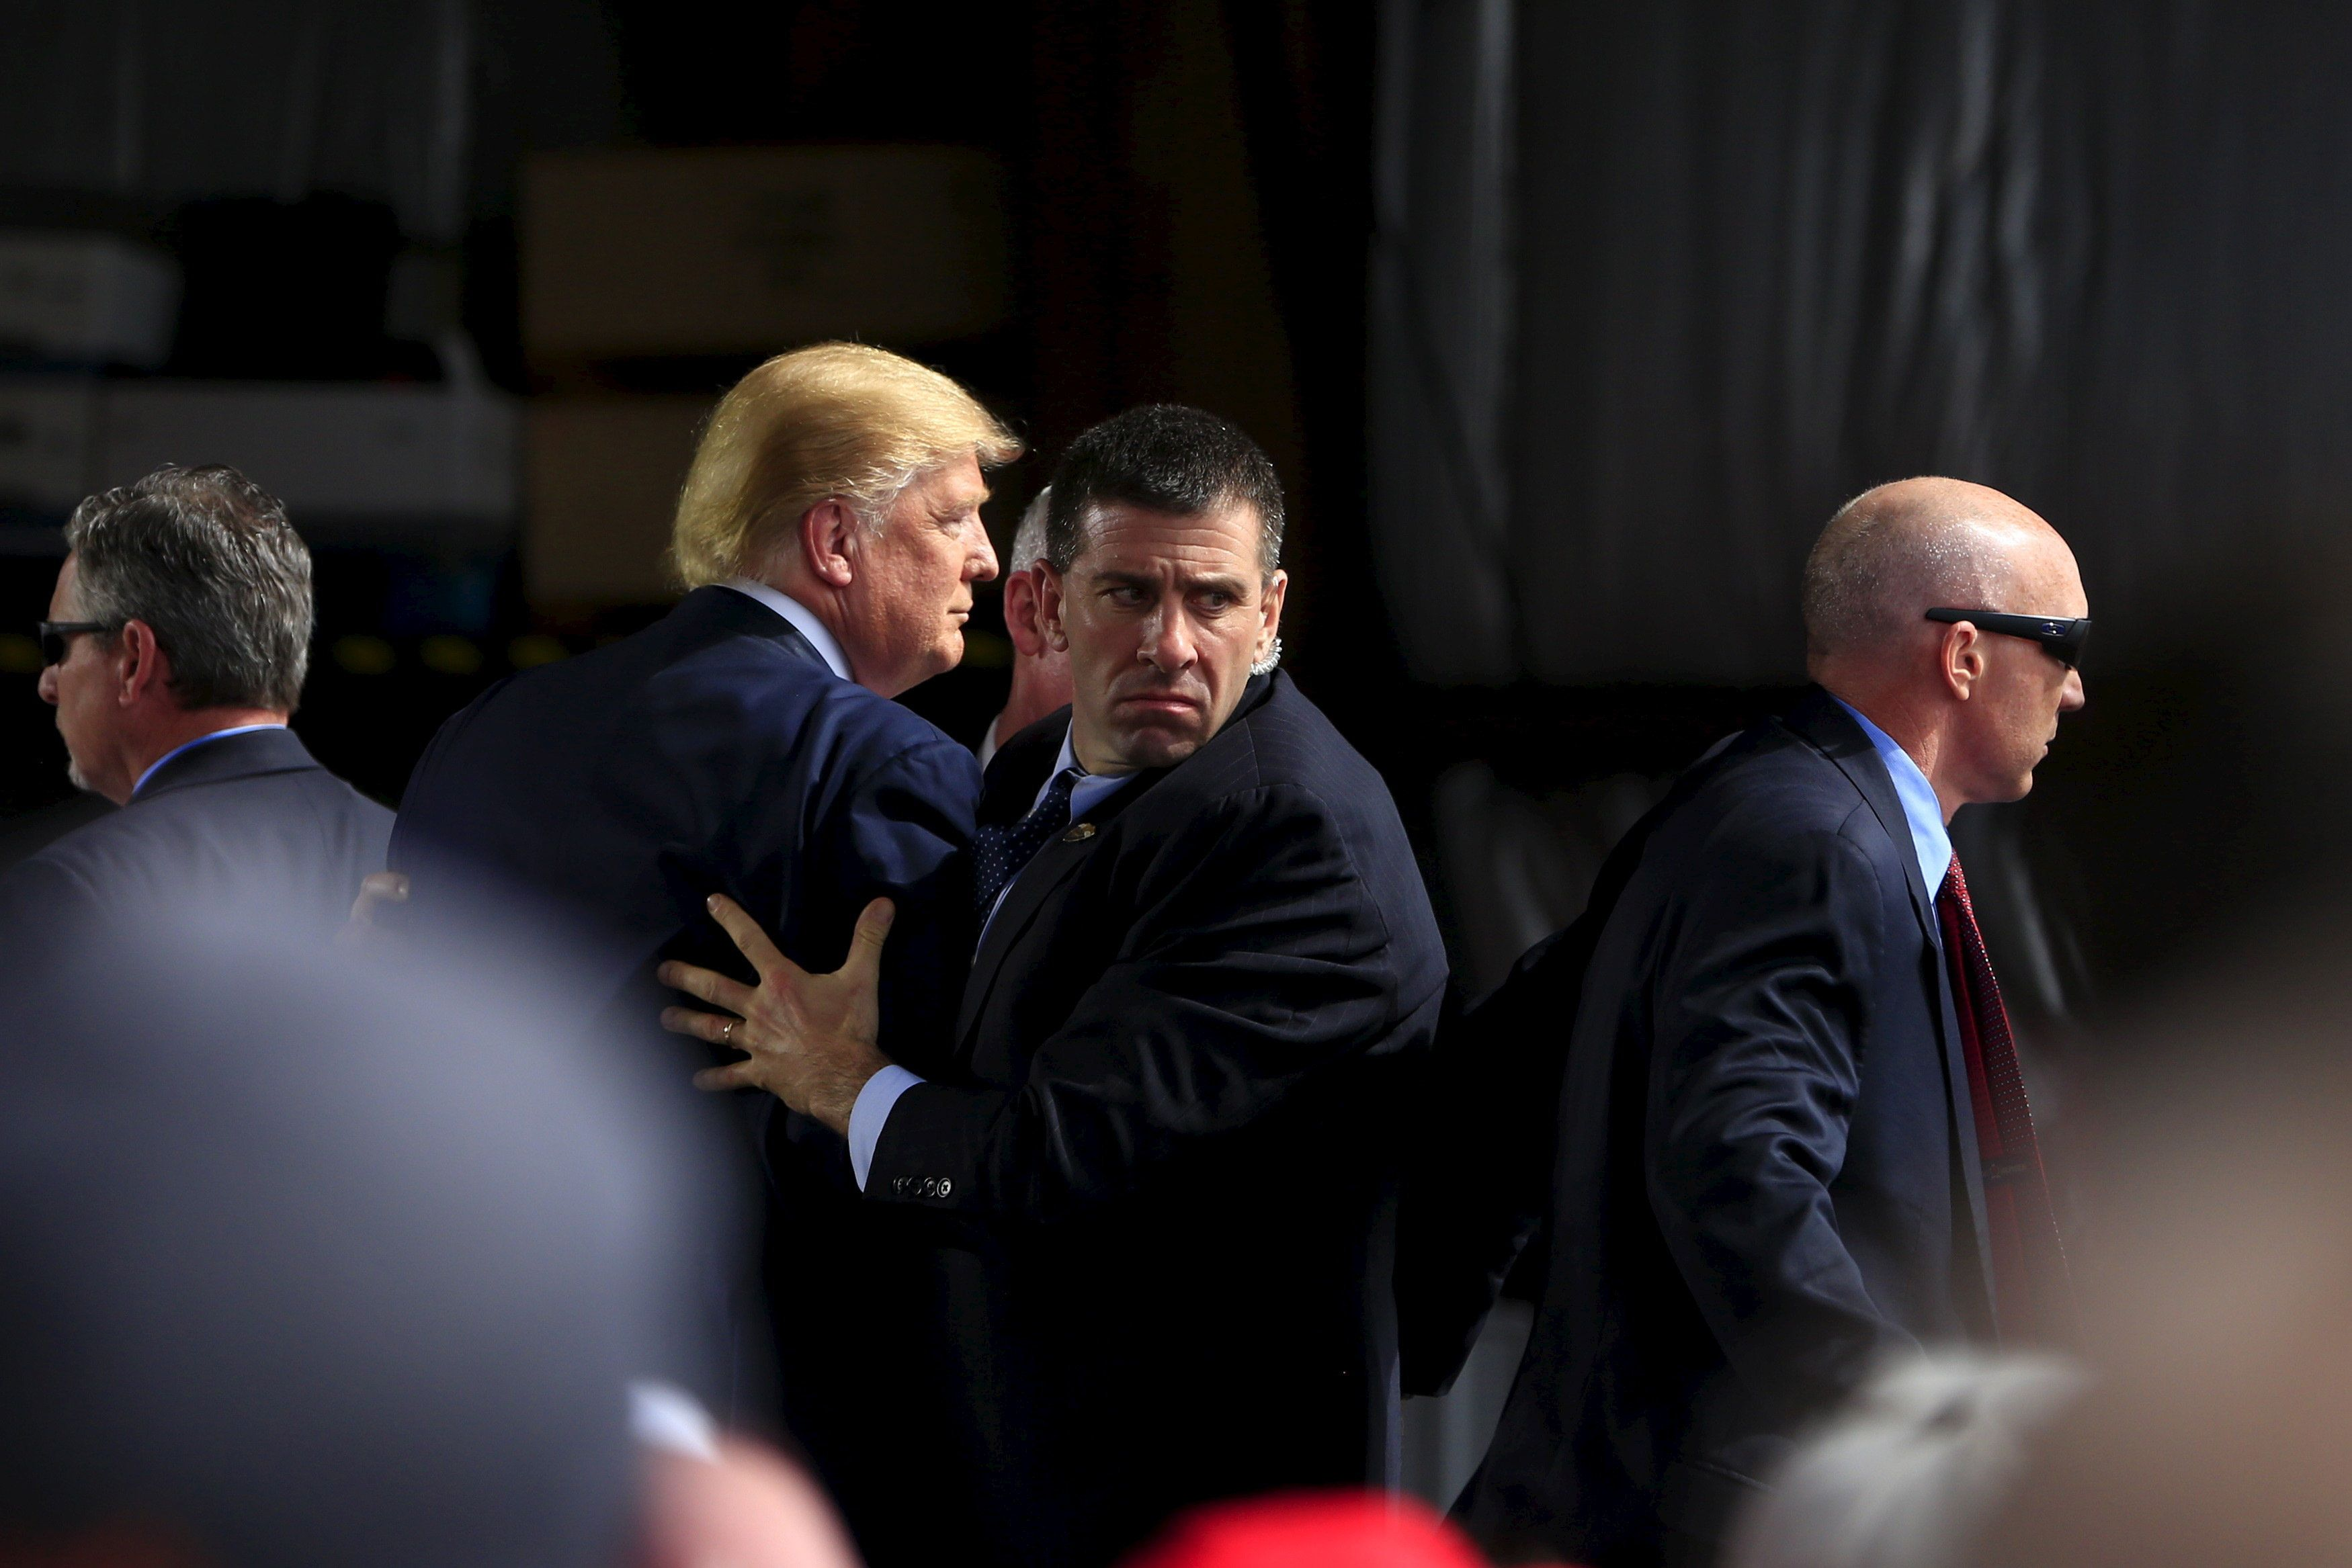 Secret Service agents surround U.S. Republican presidential candidate Donald Trump during a disturbance as he speaks at Dayton International Airport in Dayton, Ohio March 12, 2016.  REUTERS/Aaron P. Bernstein      TPX IMAGES OF THE DAY